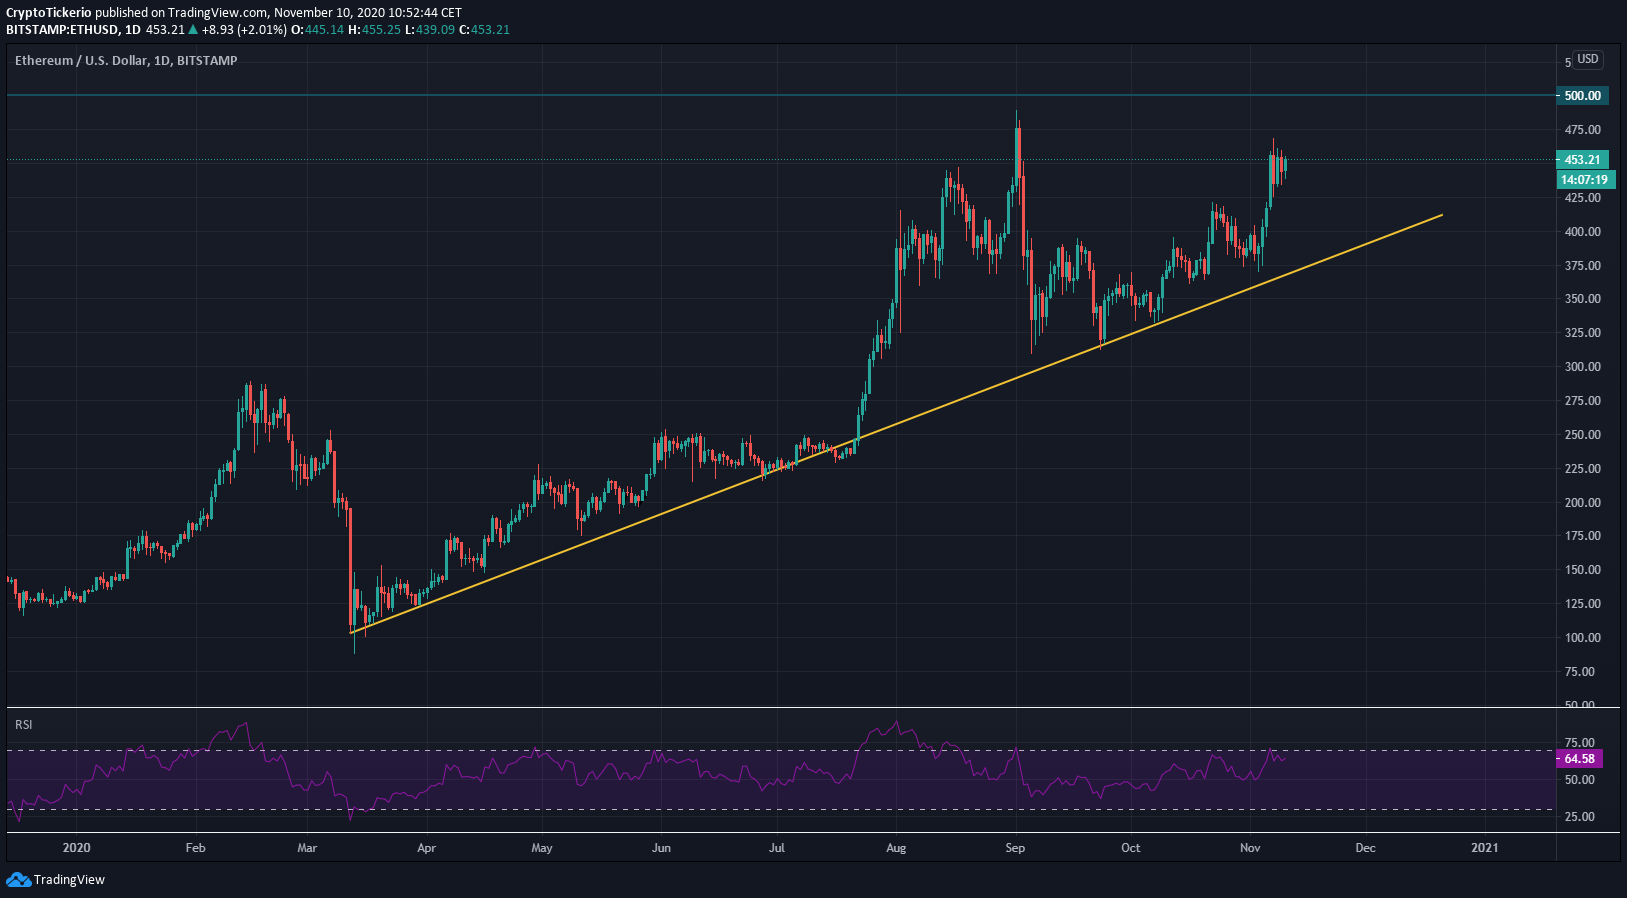 ETH/USD 1 day chart – Uptrend in 2020